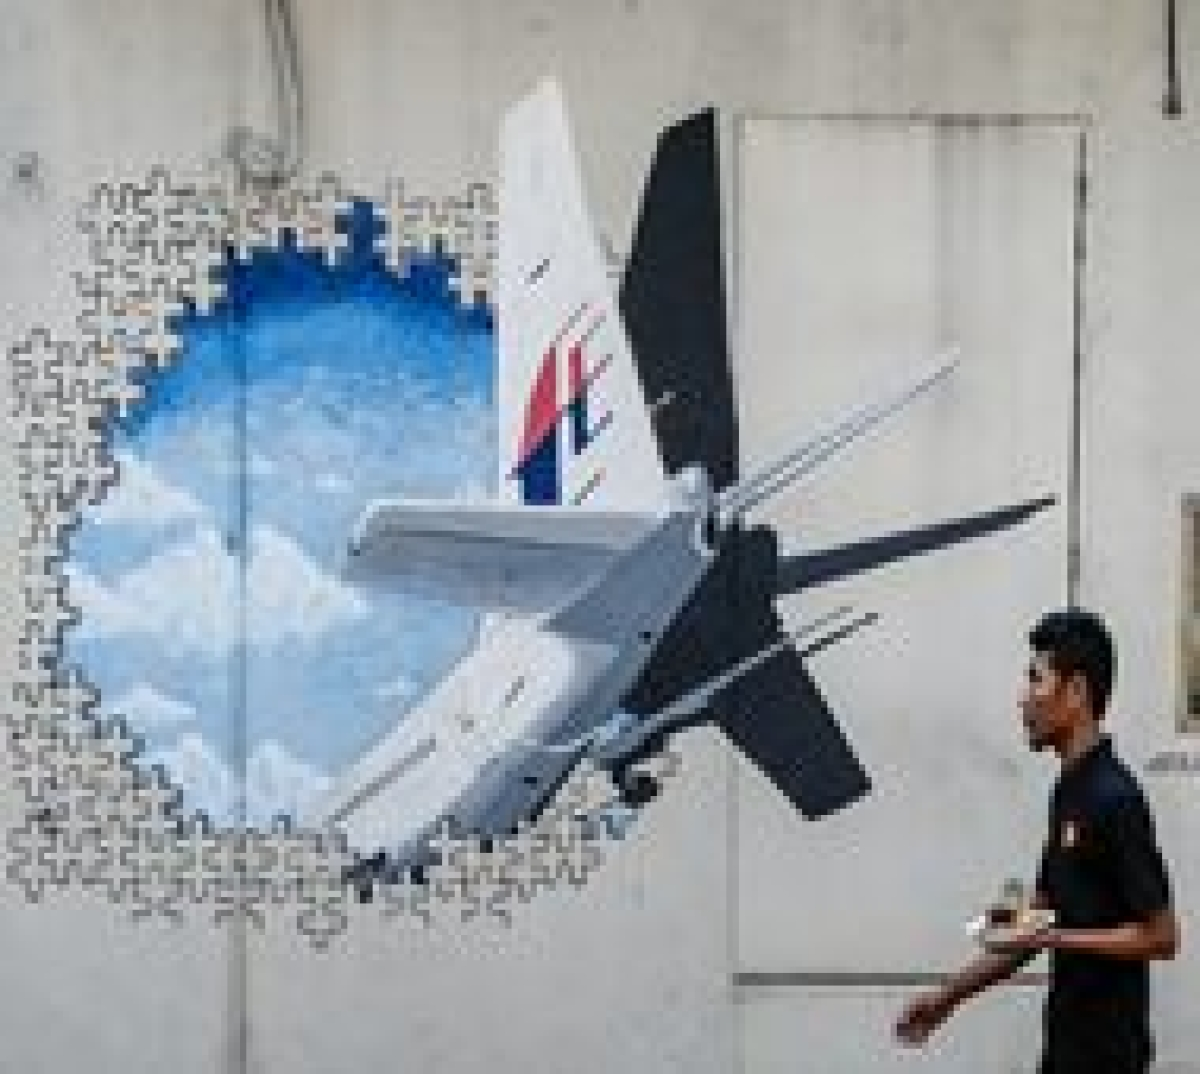 2 more pieces 'almost certainly' from MH370: Malaysia